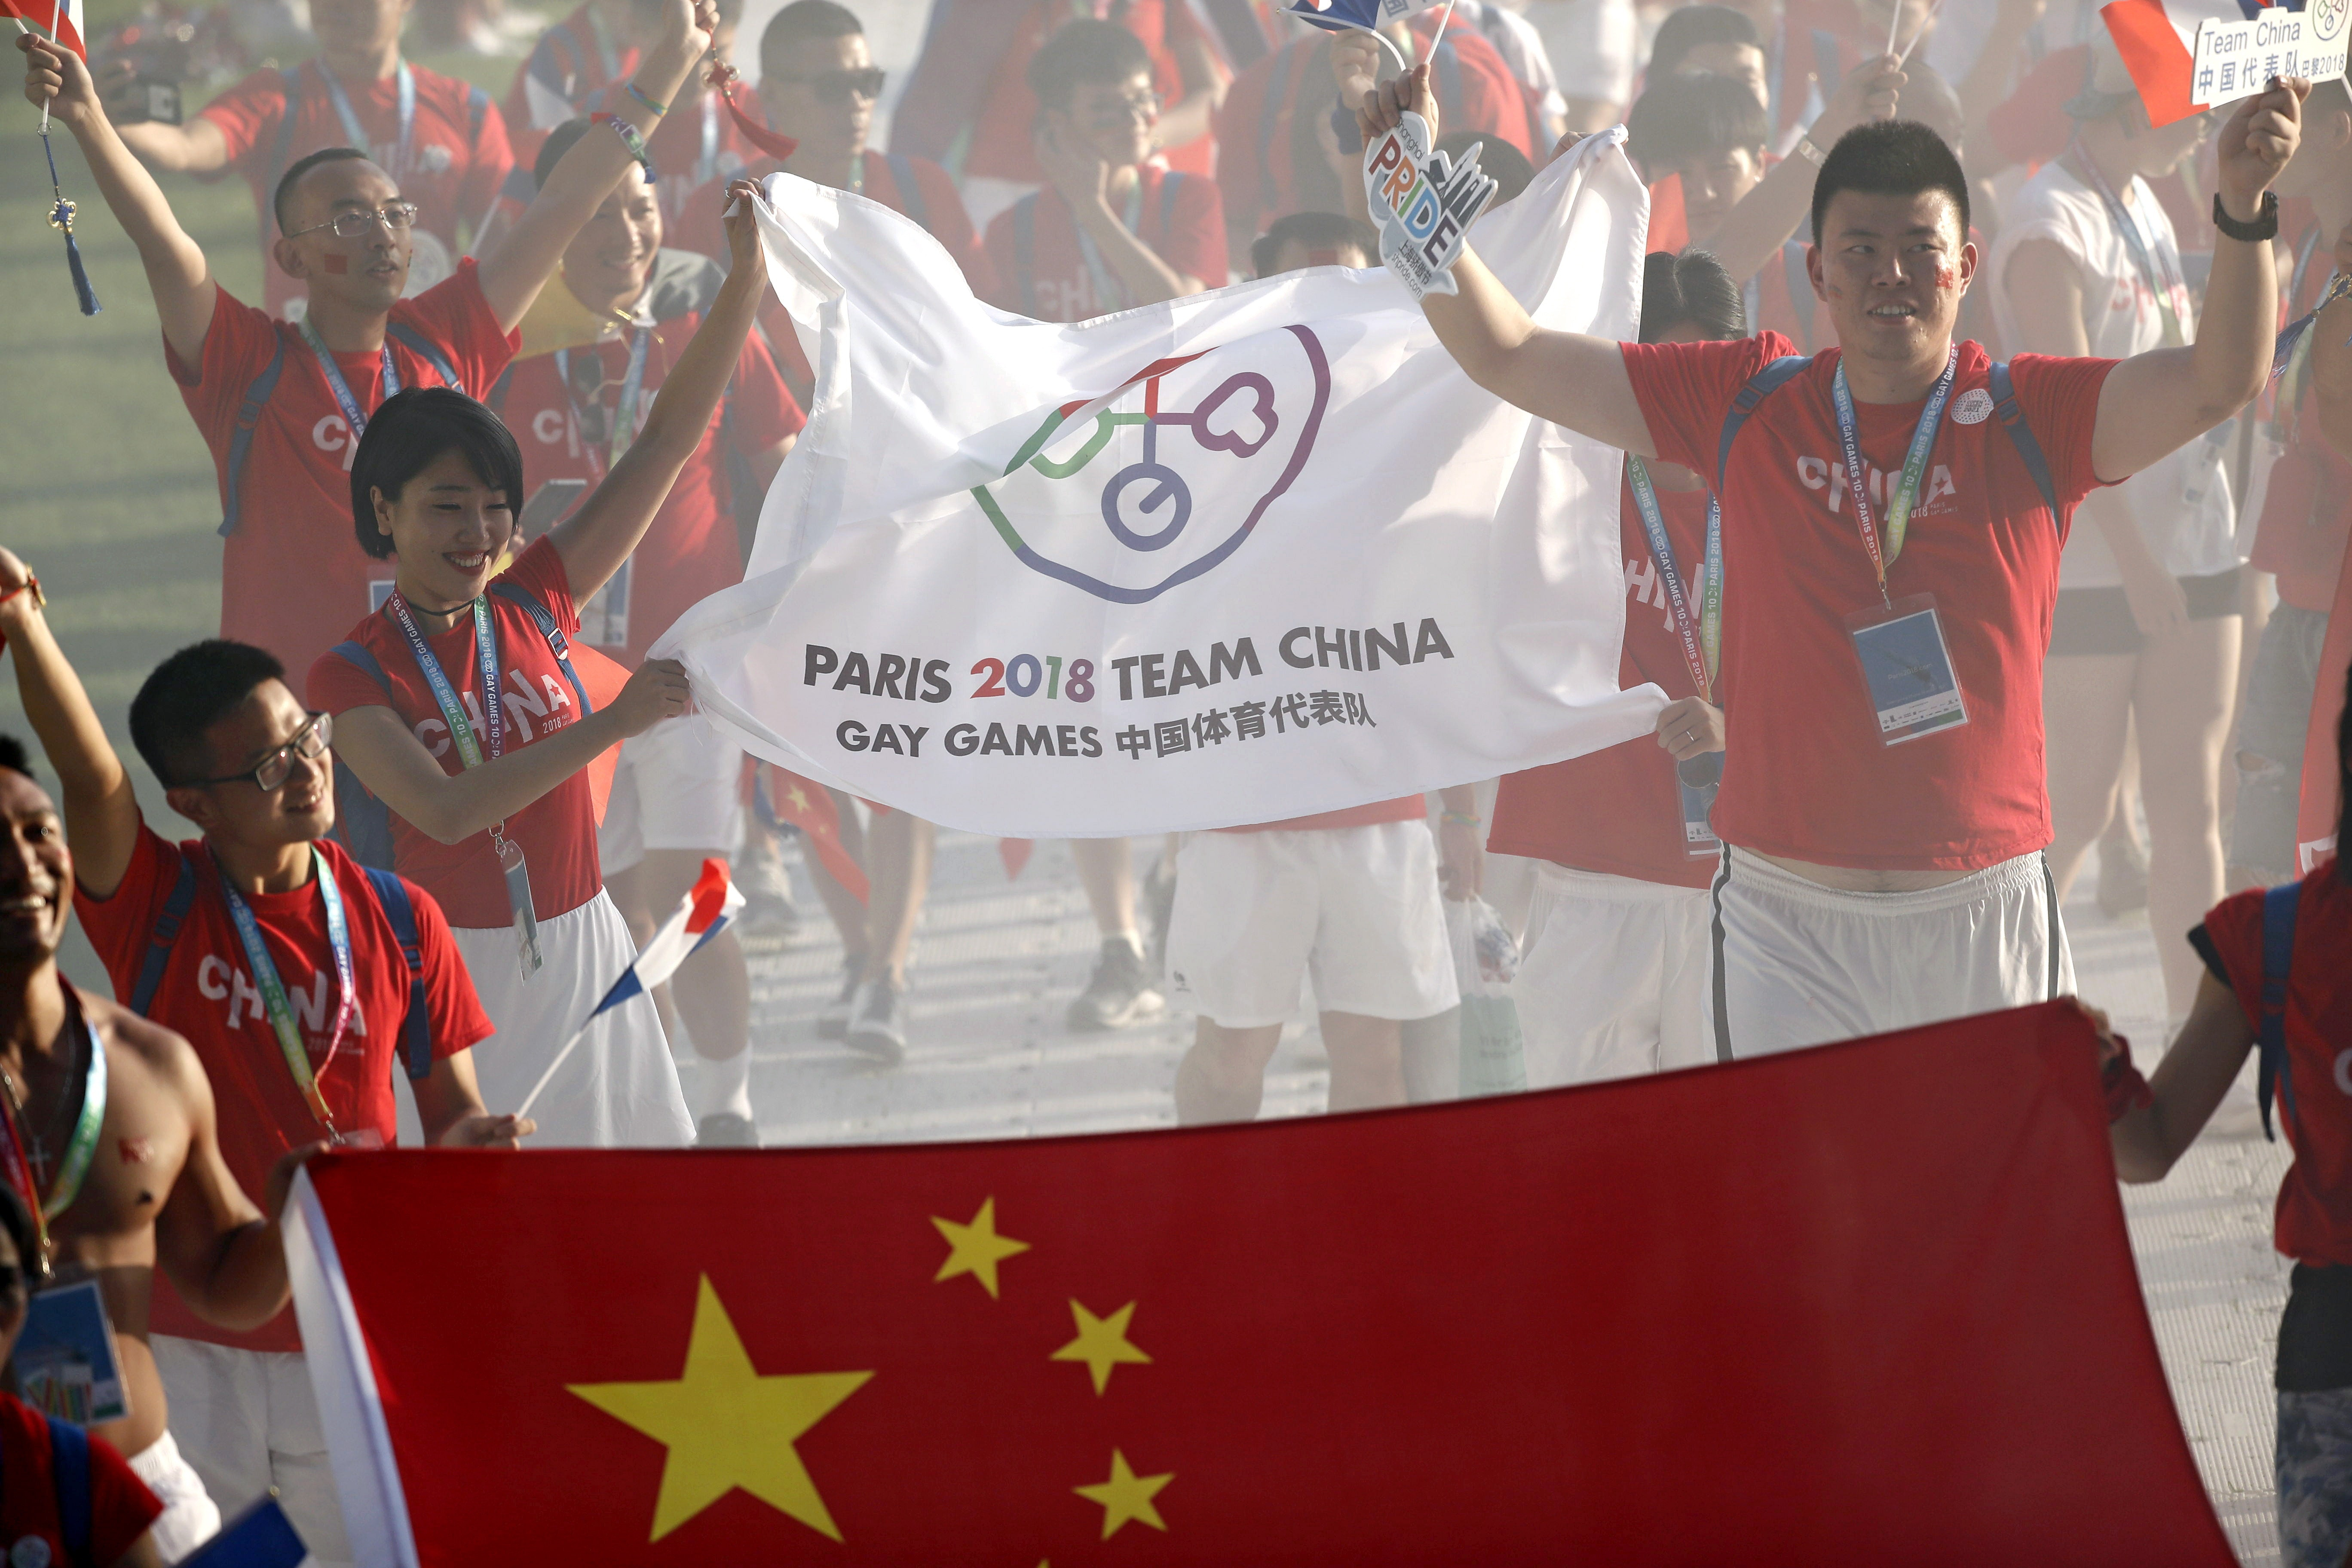 The Gay Games are still relevant. Here's why